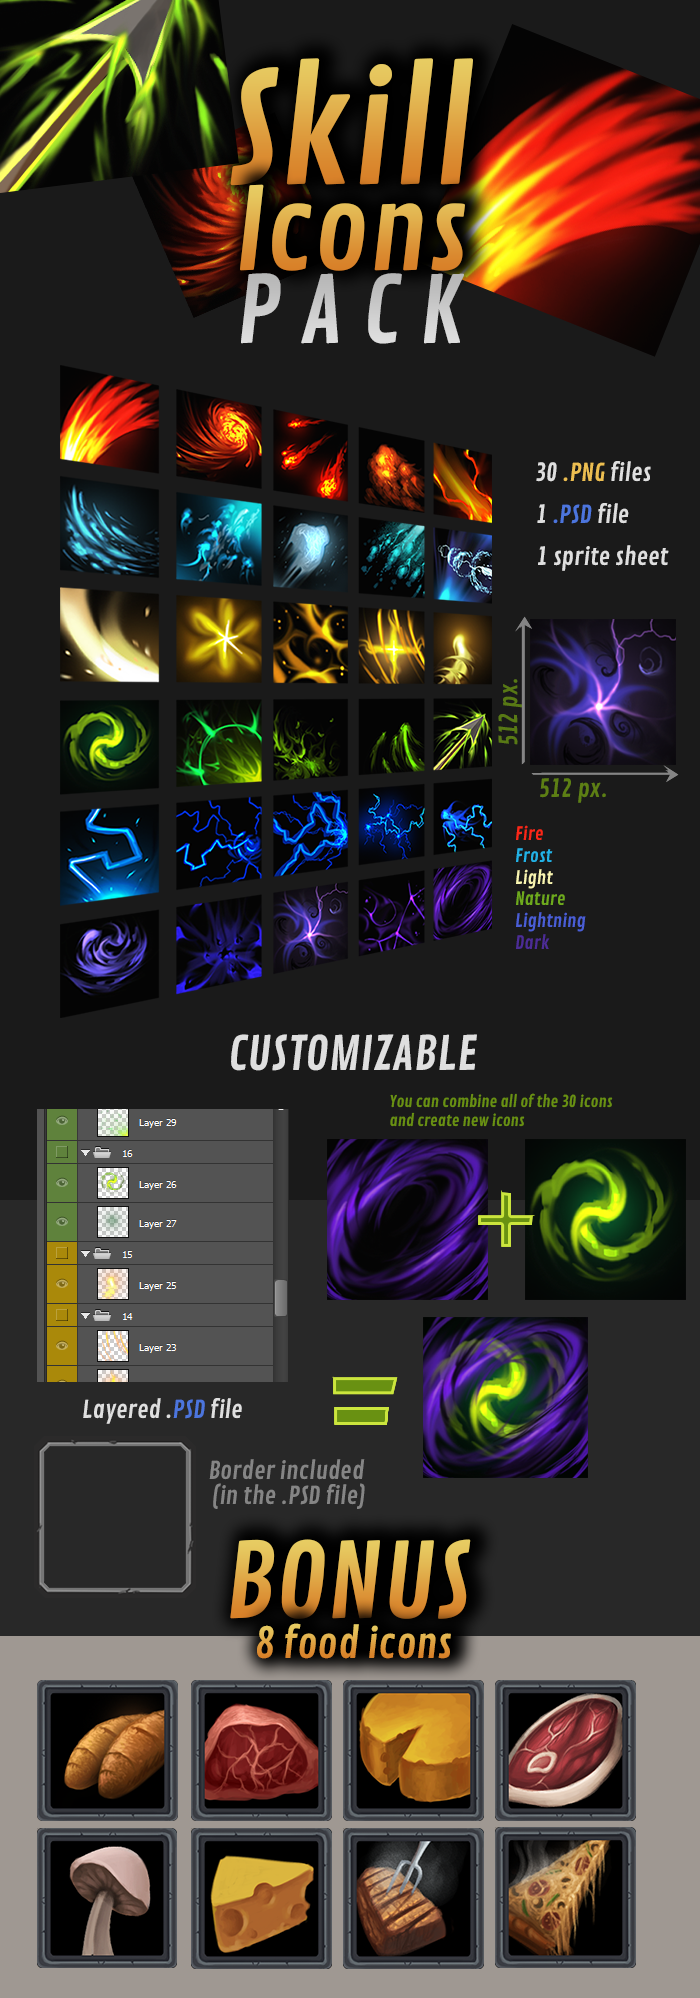 Customizable Skill Icons Pack